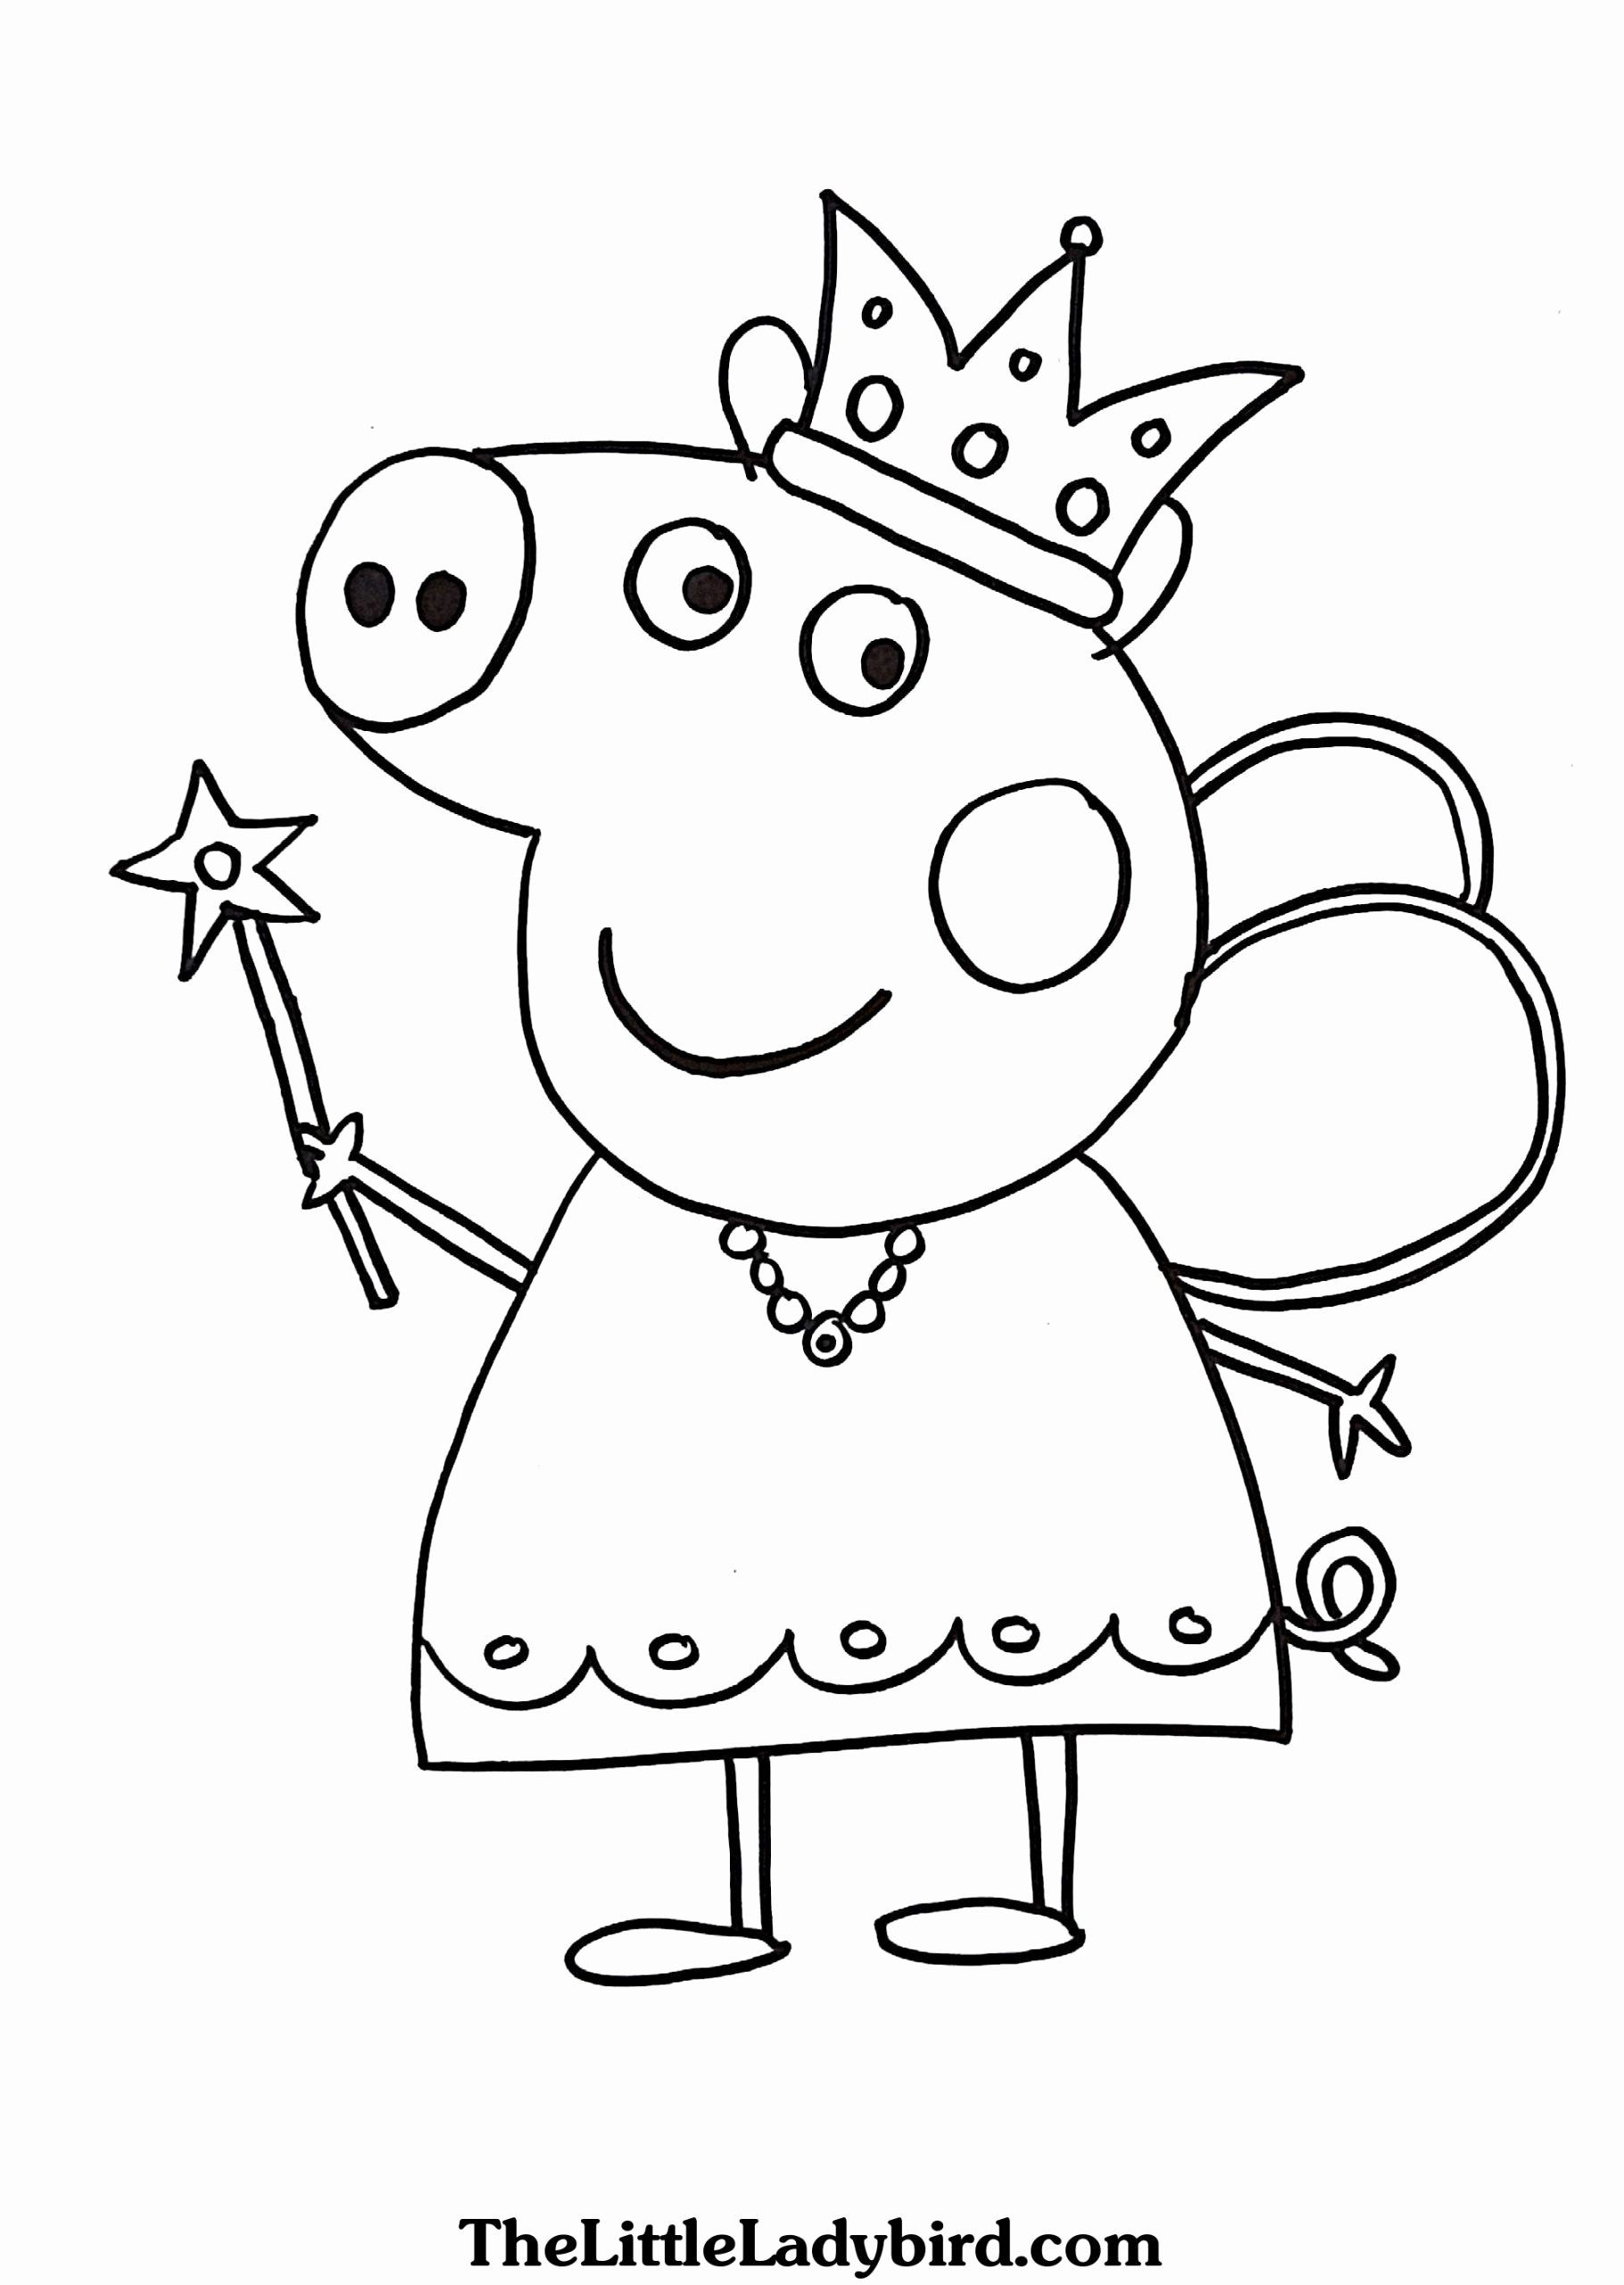 Coloring Book For Kids Unique Coloring Pages Peppa Pig Coloring Bookntable Pict In 2020 Peppa Pig Coloring Pages Peppa Pig Colouring Halloween Coloring Pages Printable